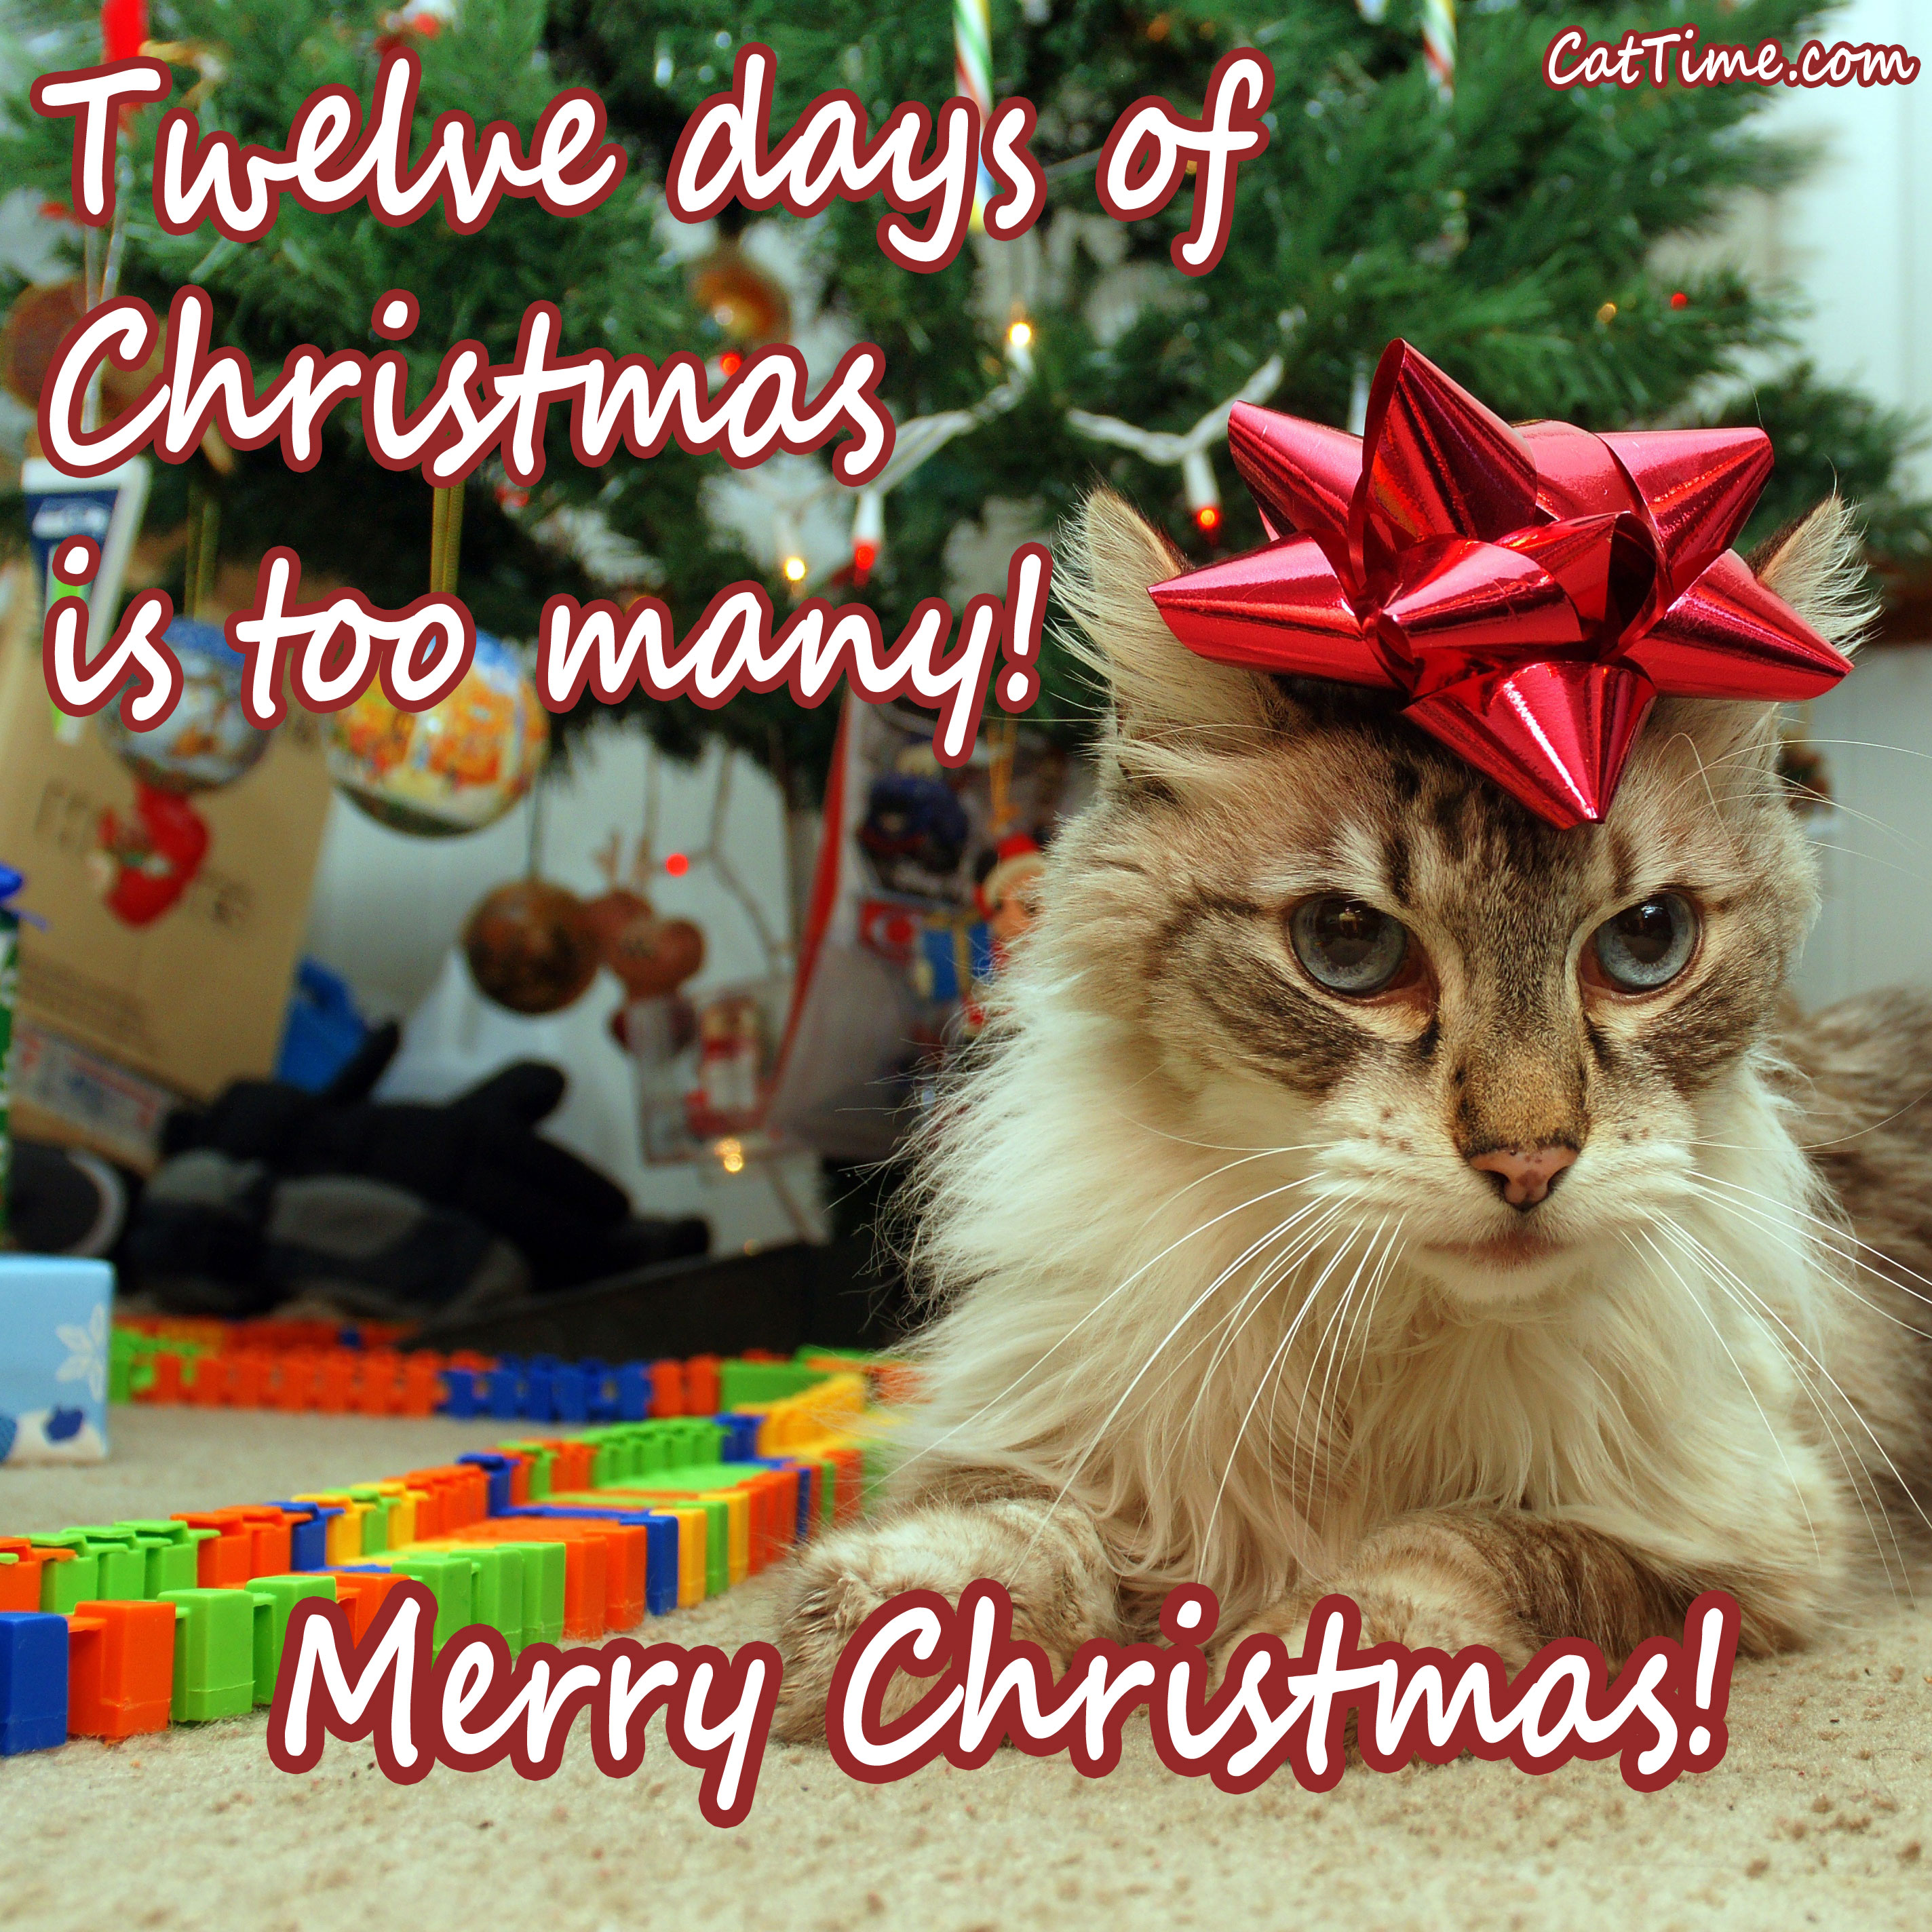 15 Cat Christmas Cards You Can Share With Your Friends And Family ...